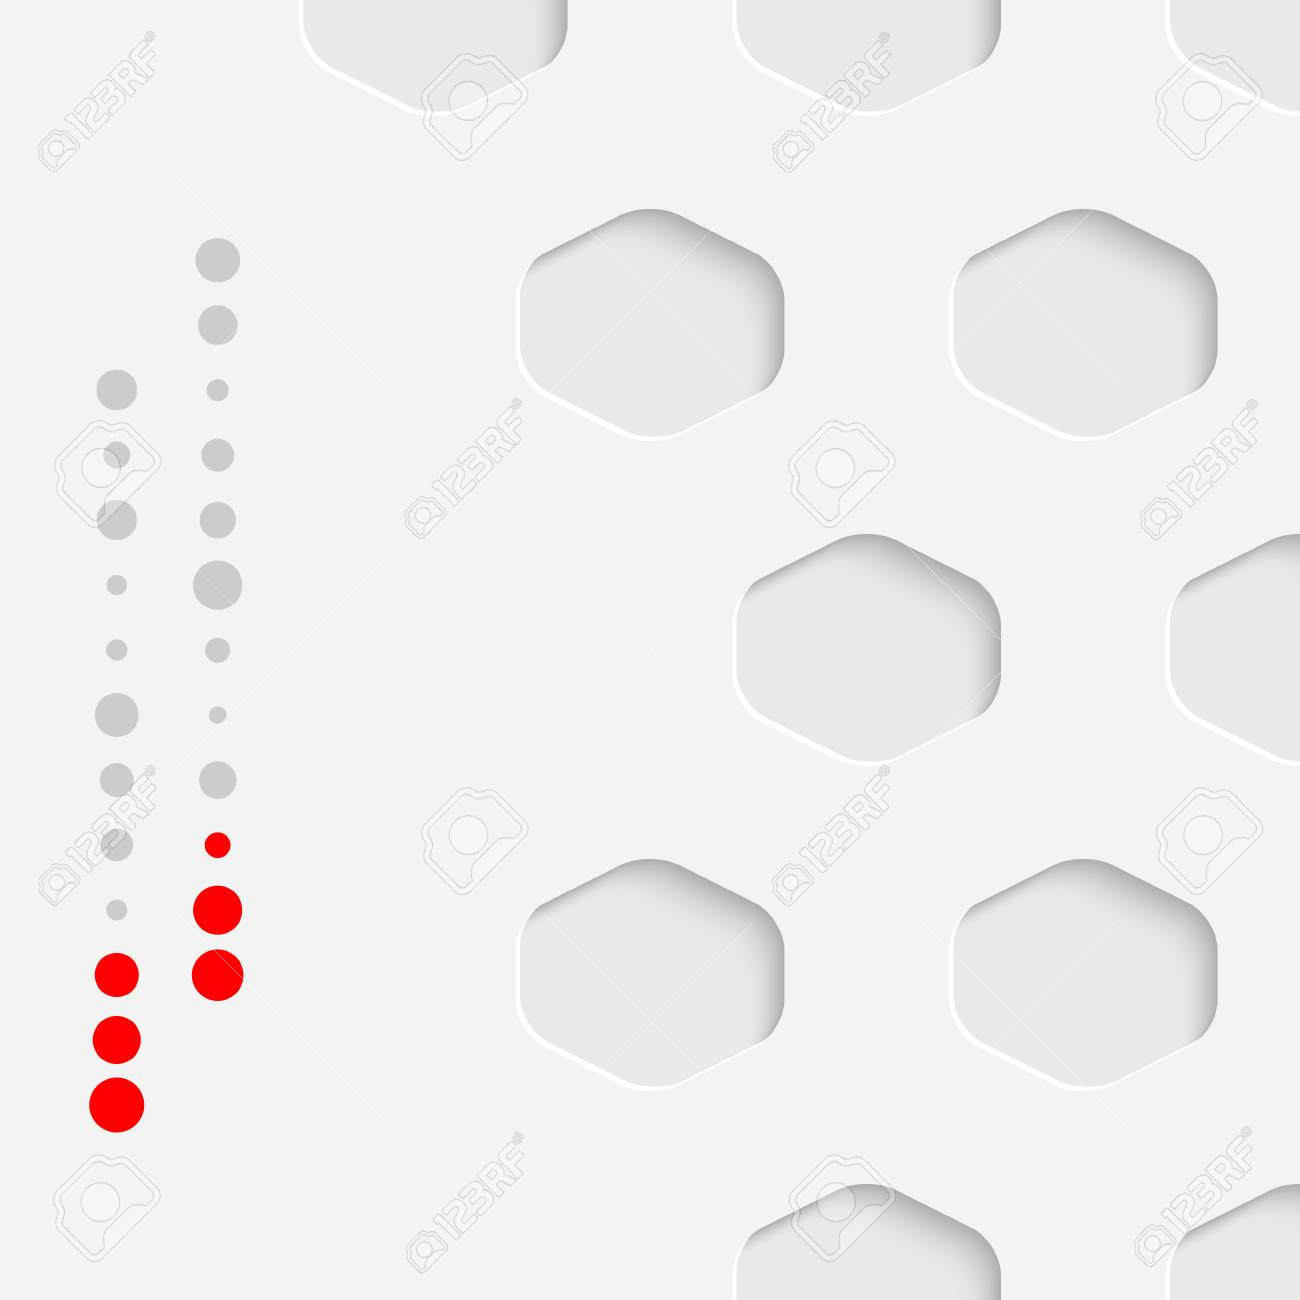 Minimalistic Business Card Background Vector Hexagon Wallpaper With Copyspace White Creative Graphic Design Stock